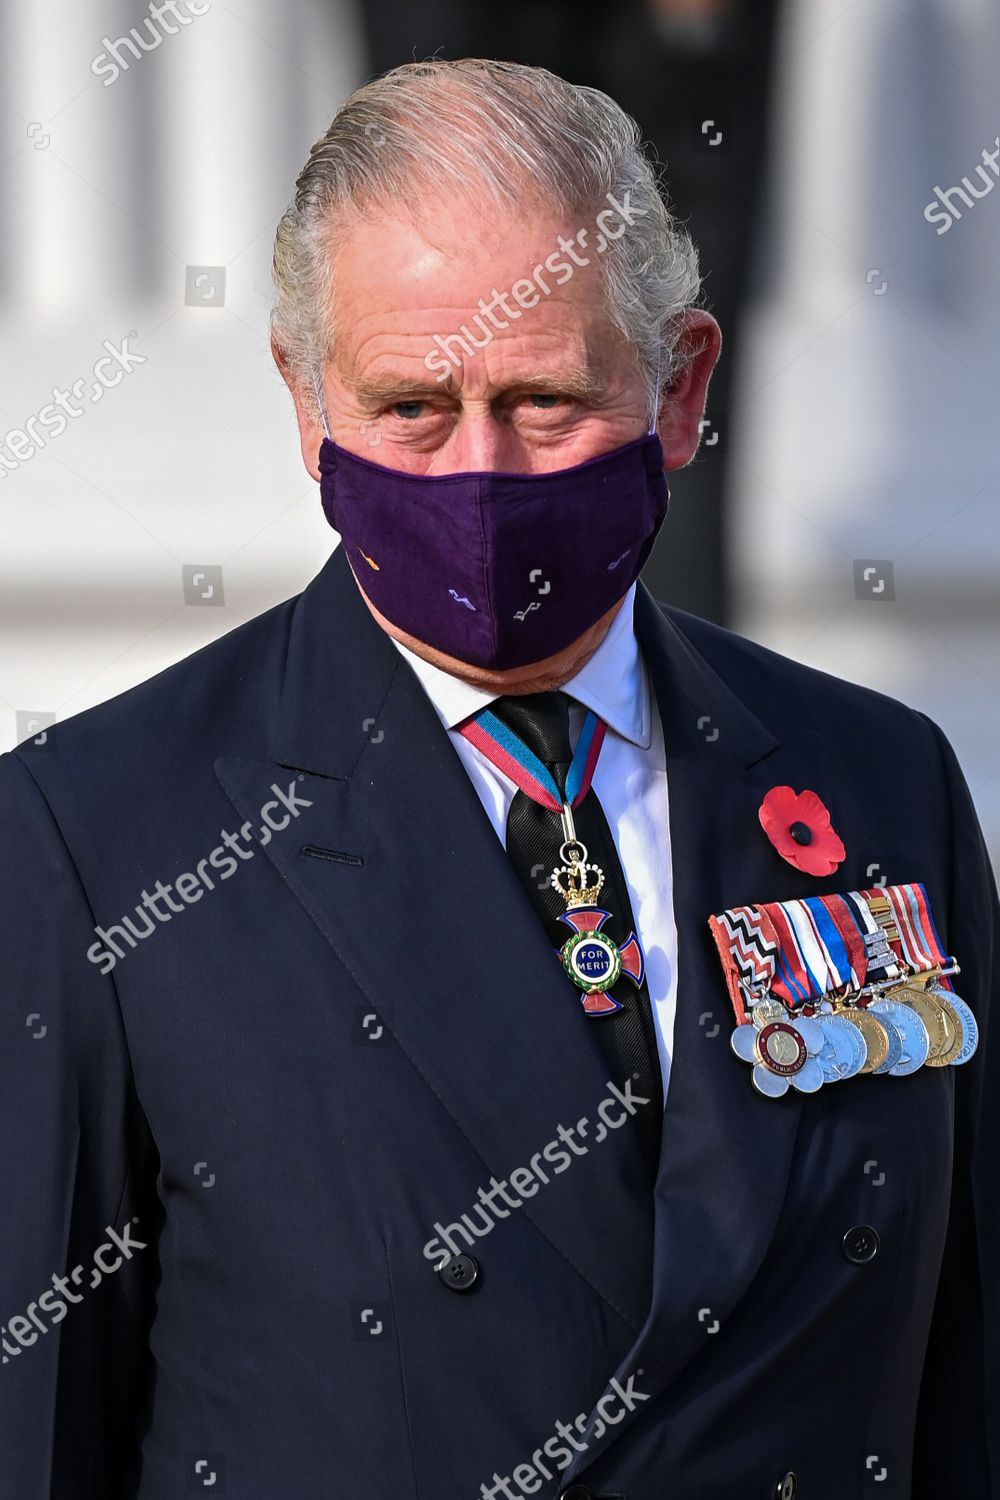 prince-charles-and-camilla-duchess-of-cornwall-visit-to-berlin-germany-shutterstock-editorial-11016282n.jpg